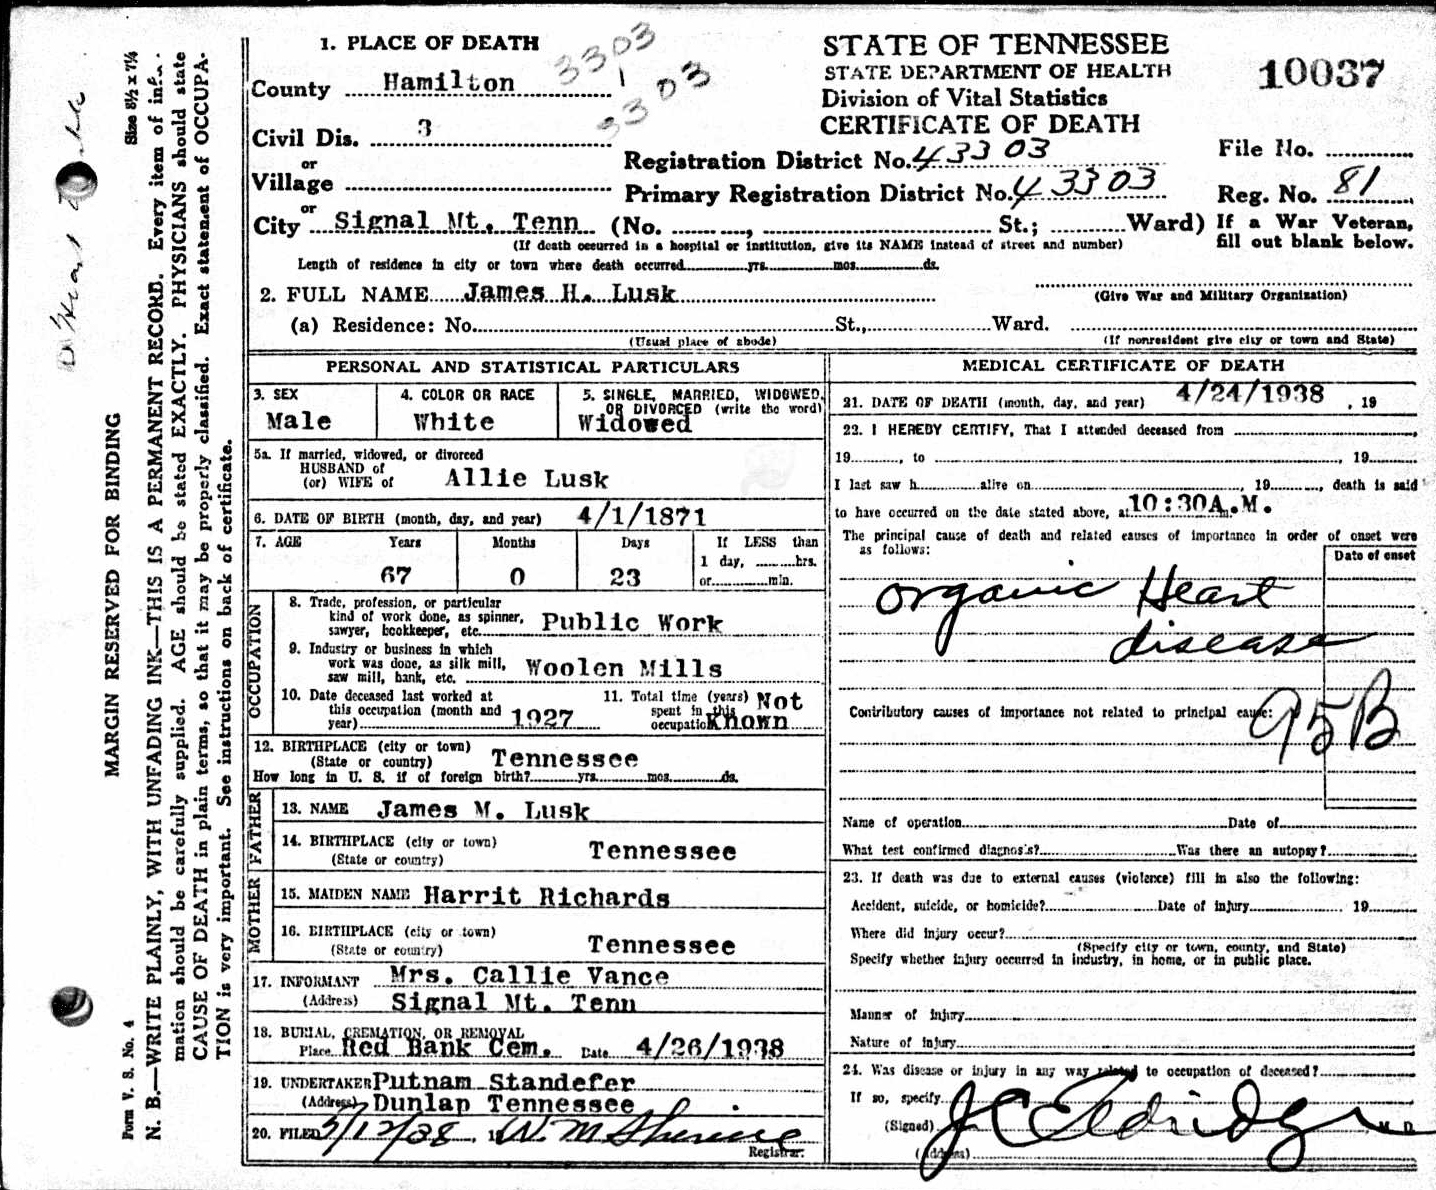 James h lusk 1871 1938 find a grave memorial james h lusk tennessee death certificate name james h lusk birth date 1 apr 1871 birth place tennessee age 67 death date24 apr 1938 death place 1betcityfo Images